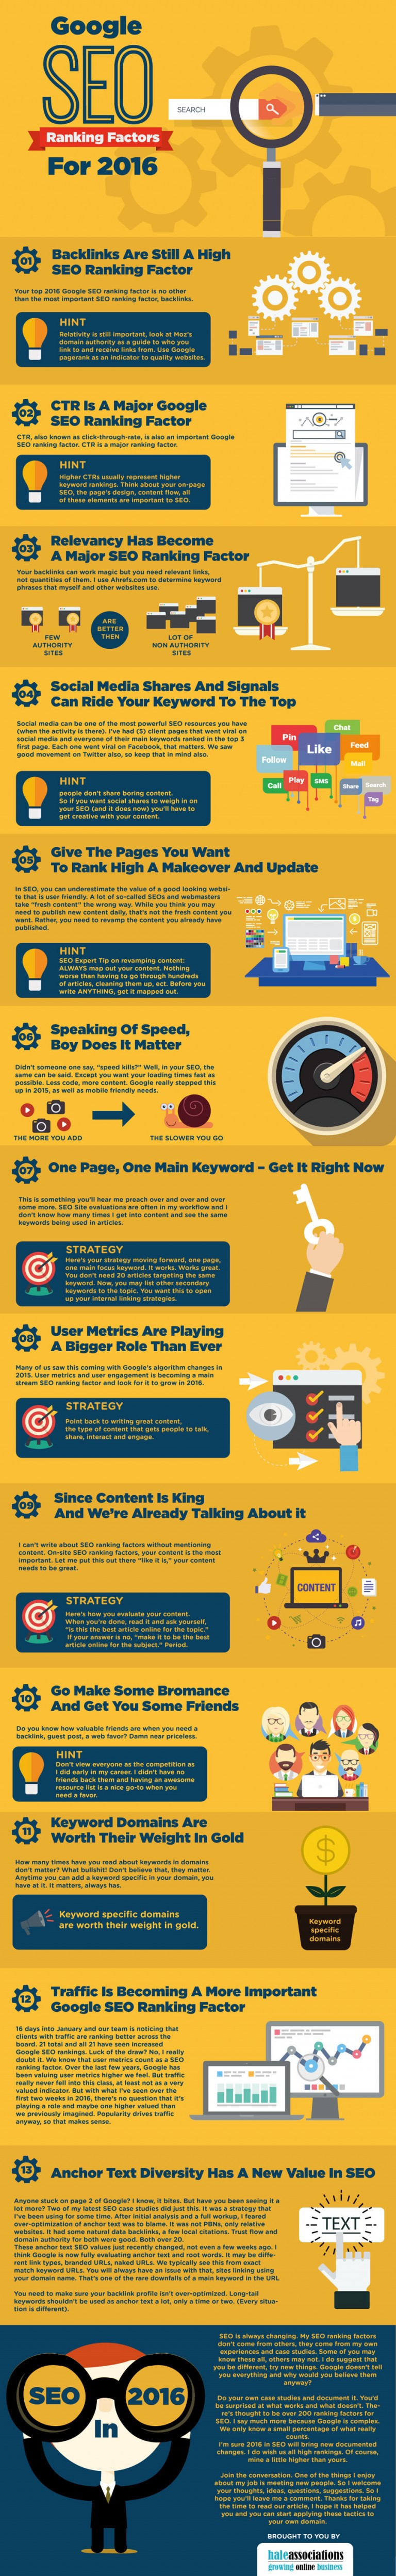 Google SEO Ranking Factors For - Infographic